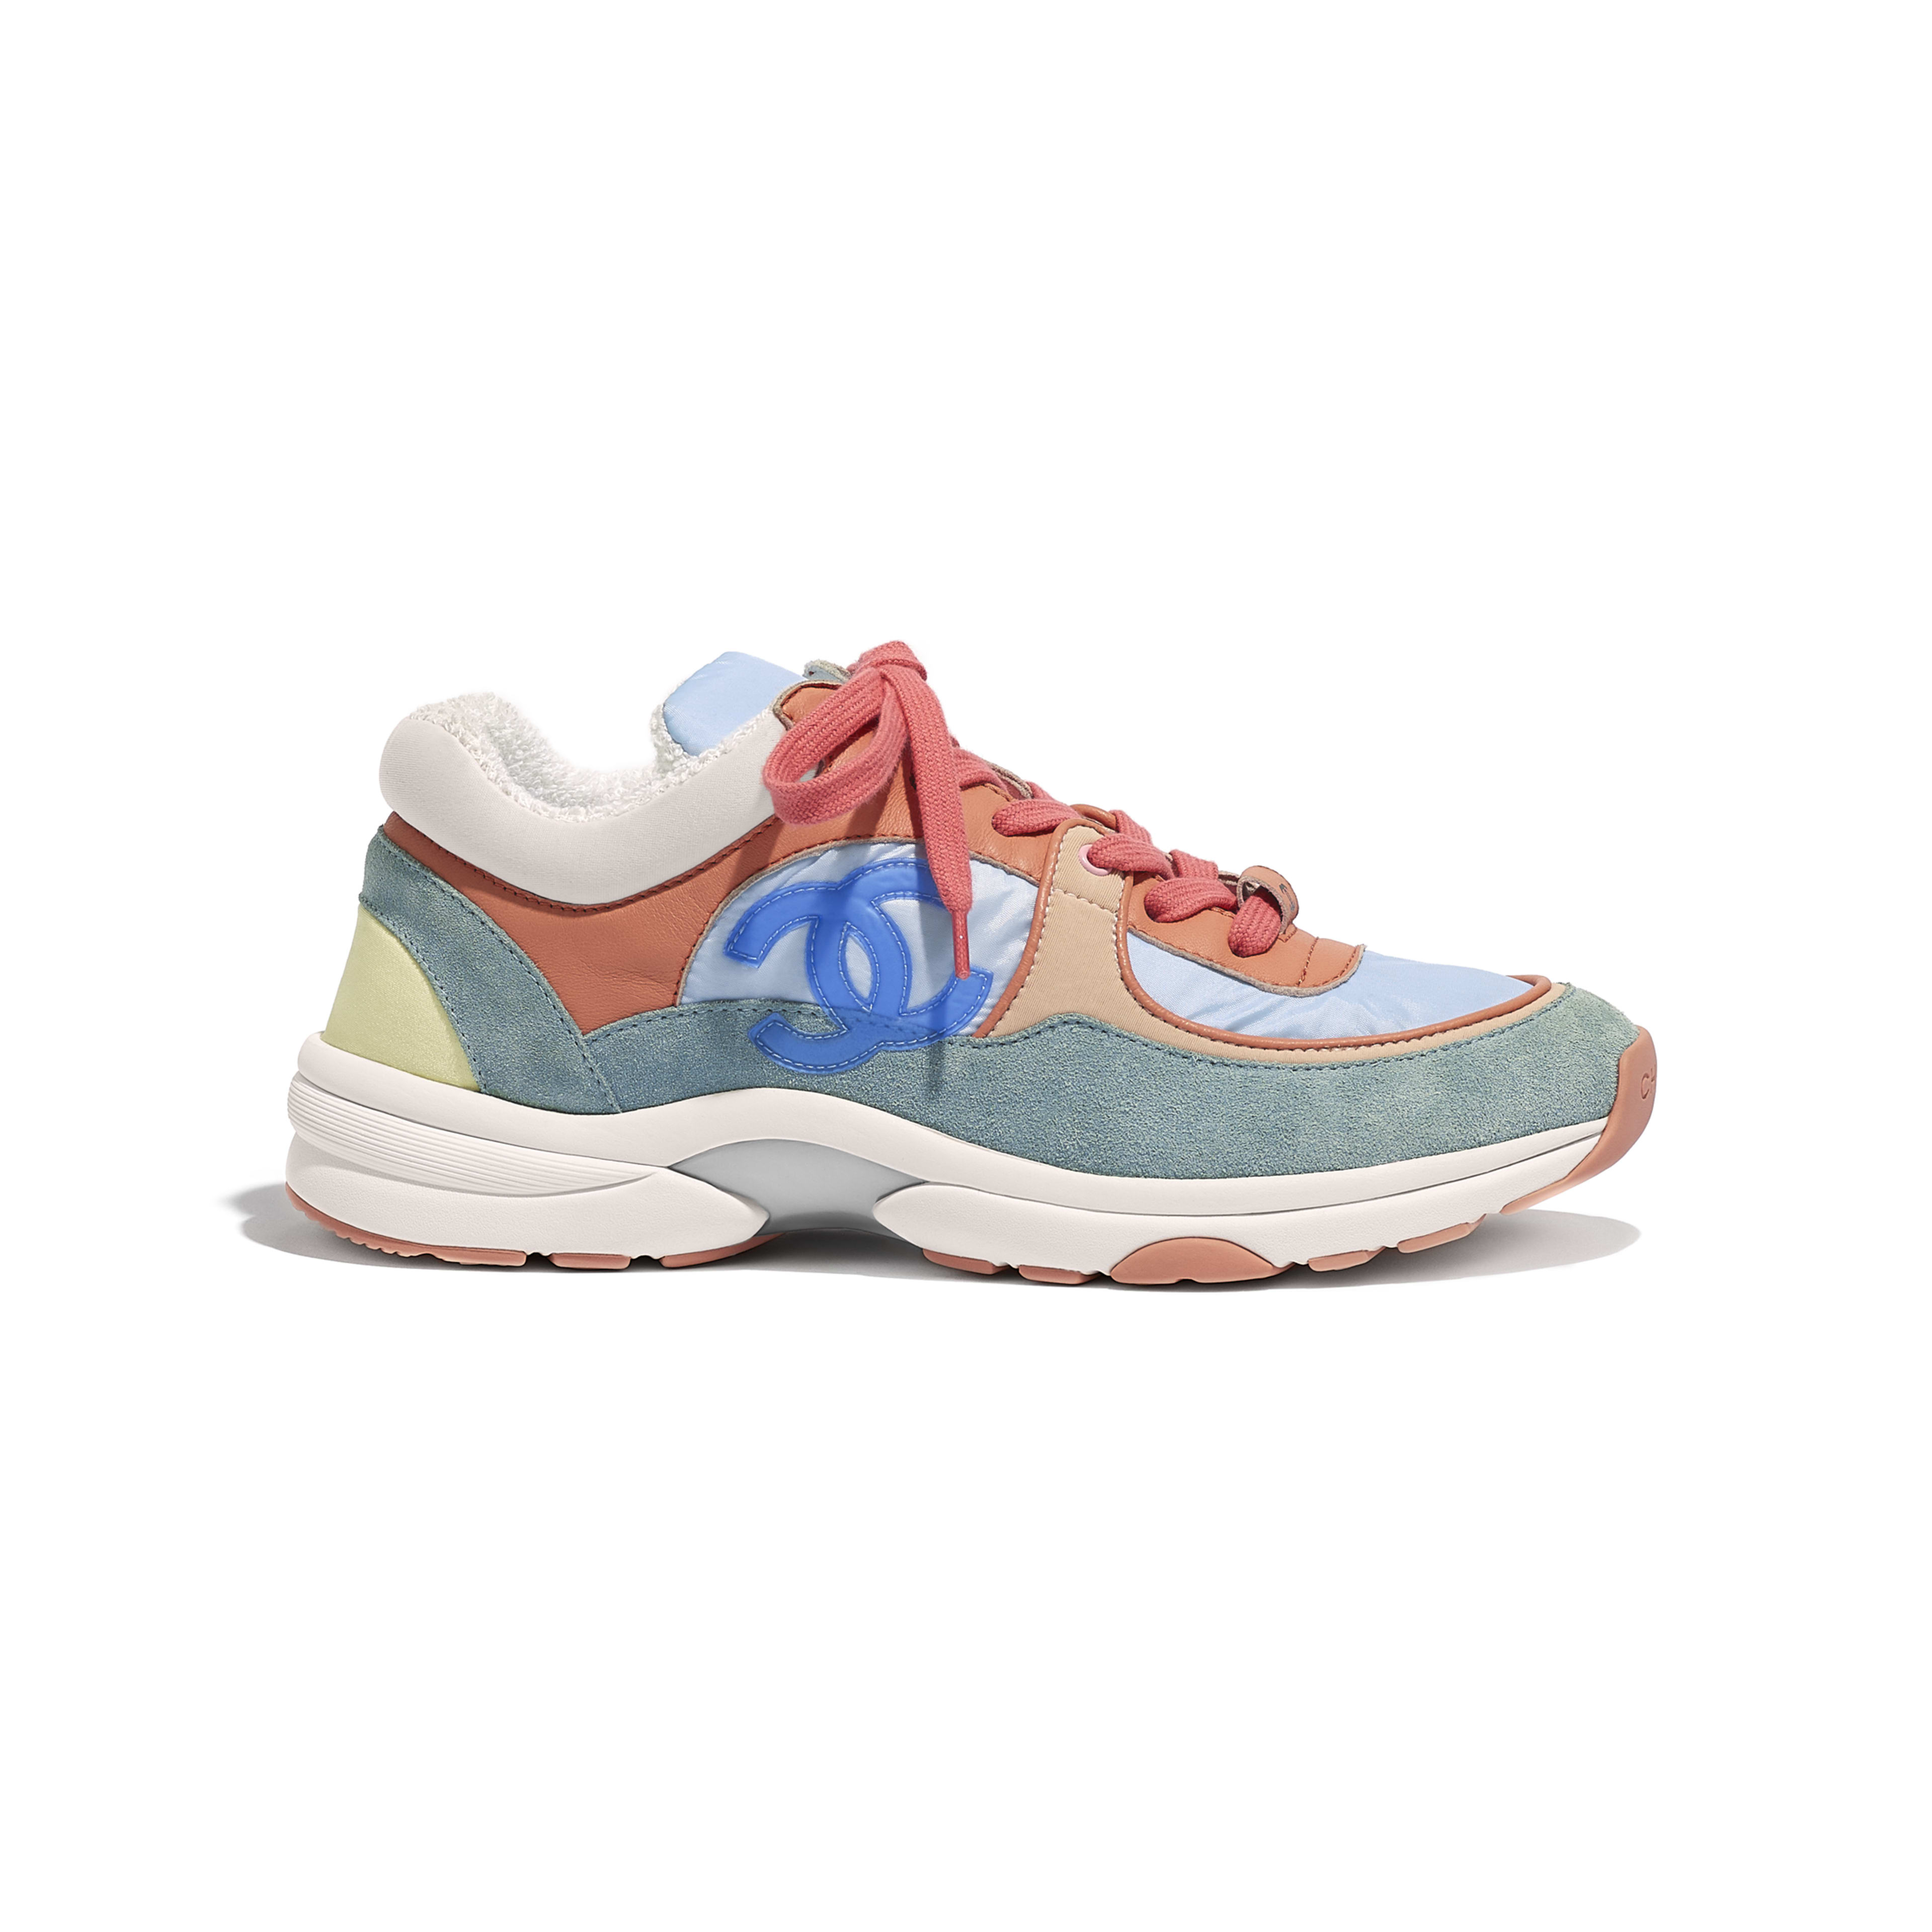 1ad2923d9afbe Sneakers - Coral